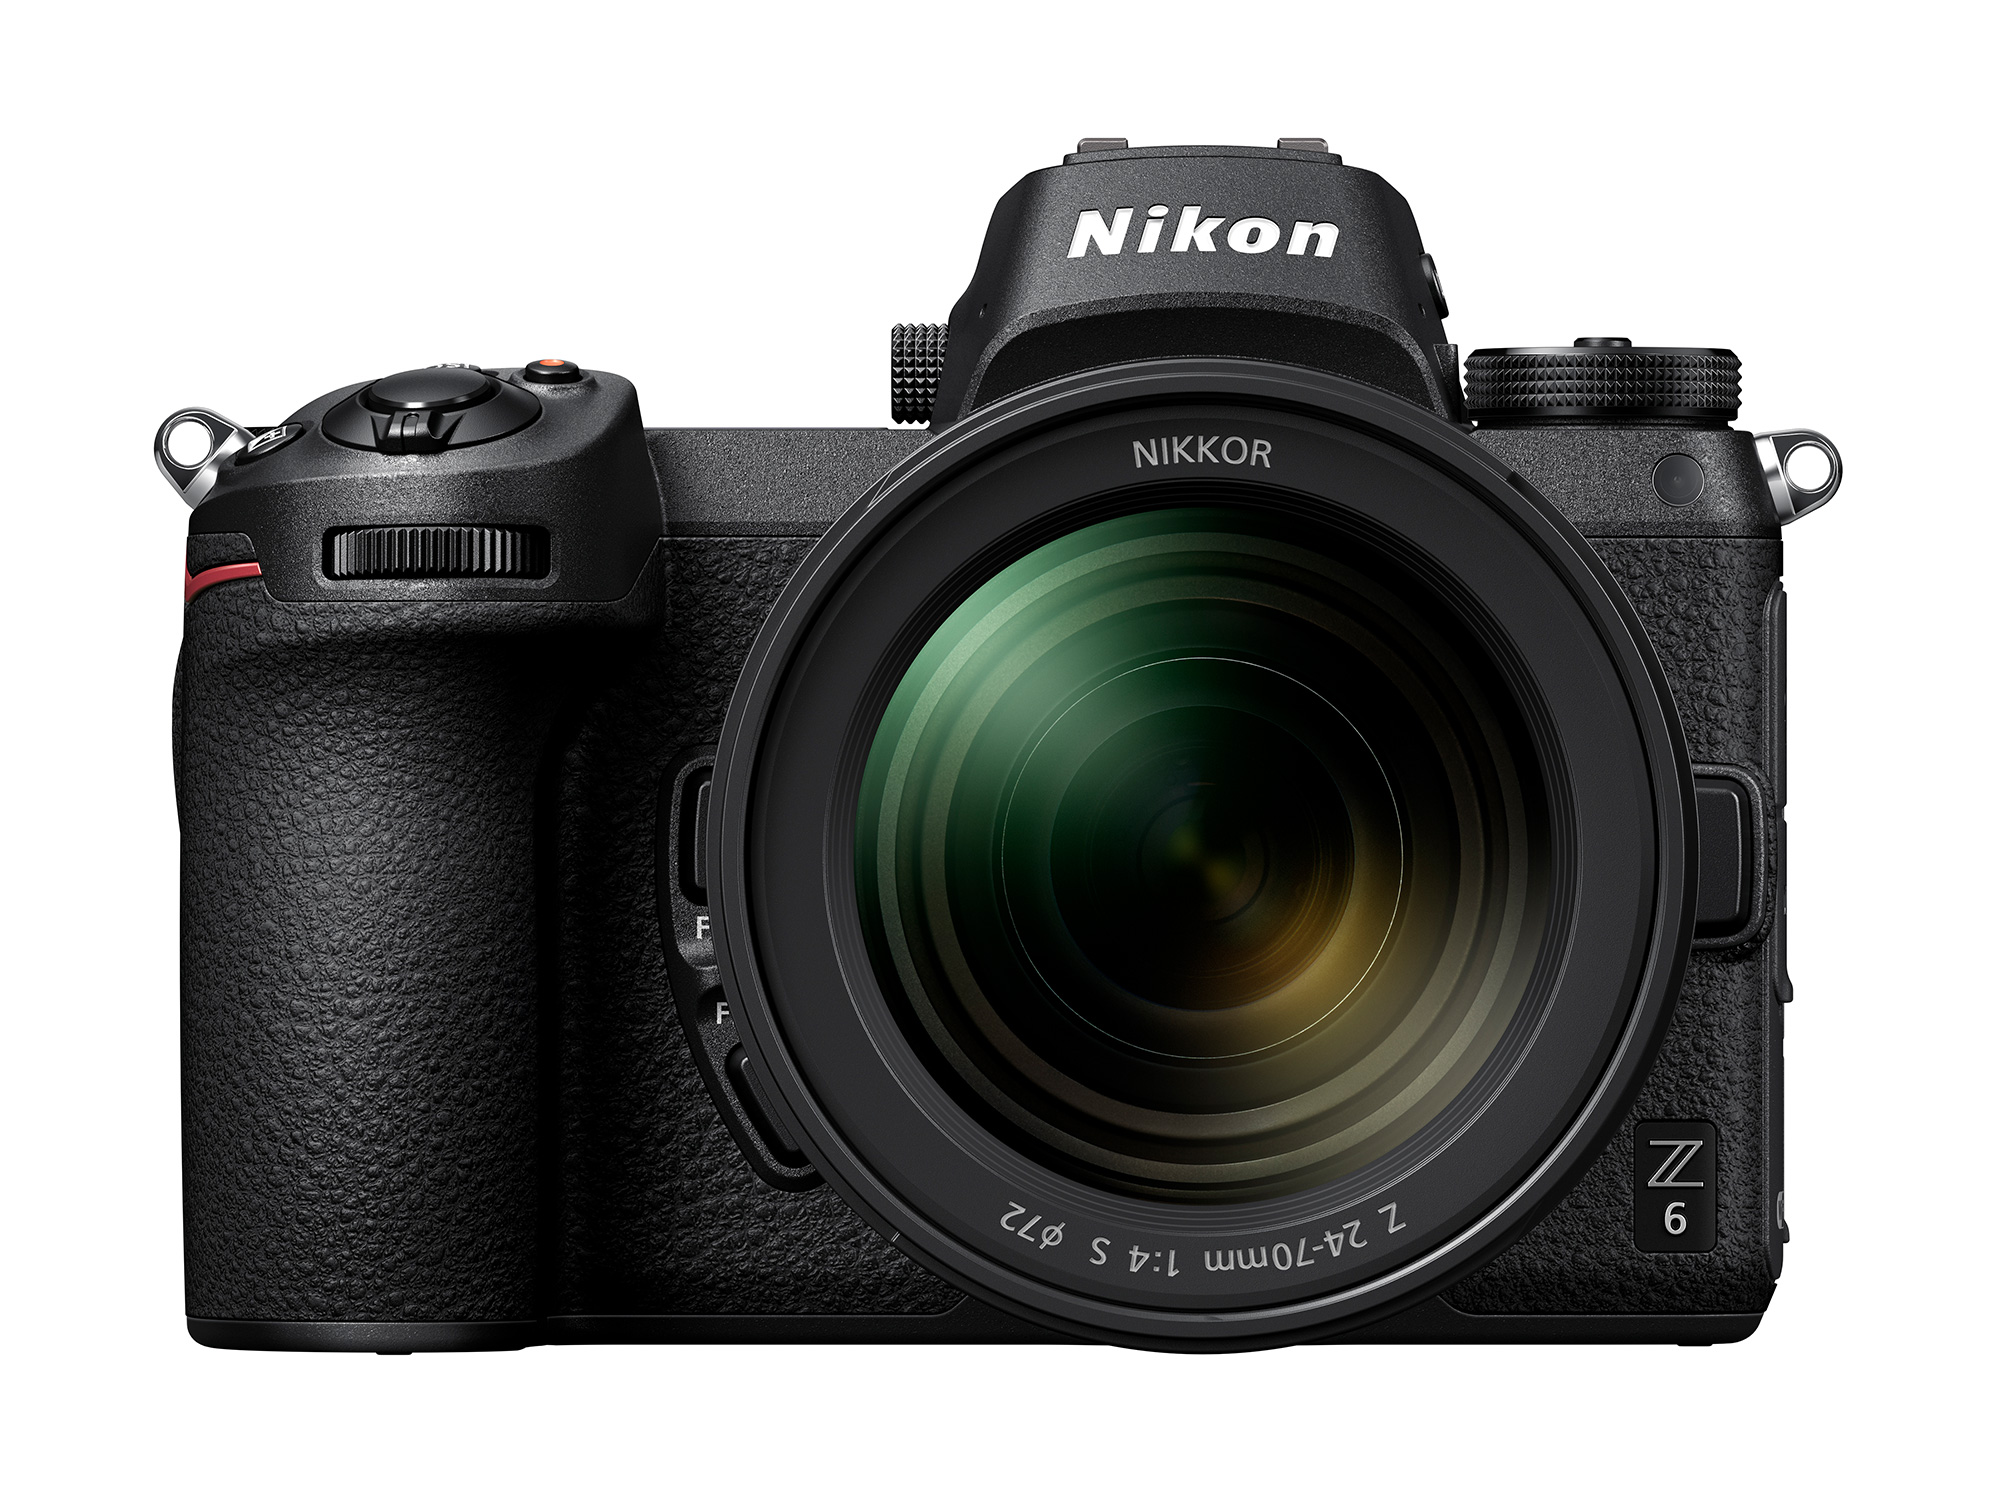 Nikon Firmware 2.0 for Nikon Z6 and Z7 brings Eye-AF, better Lowlight AF and more.